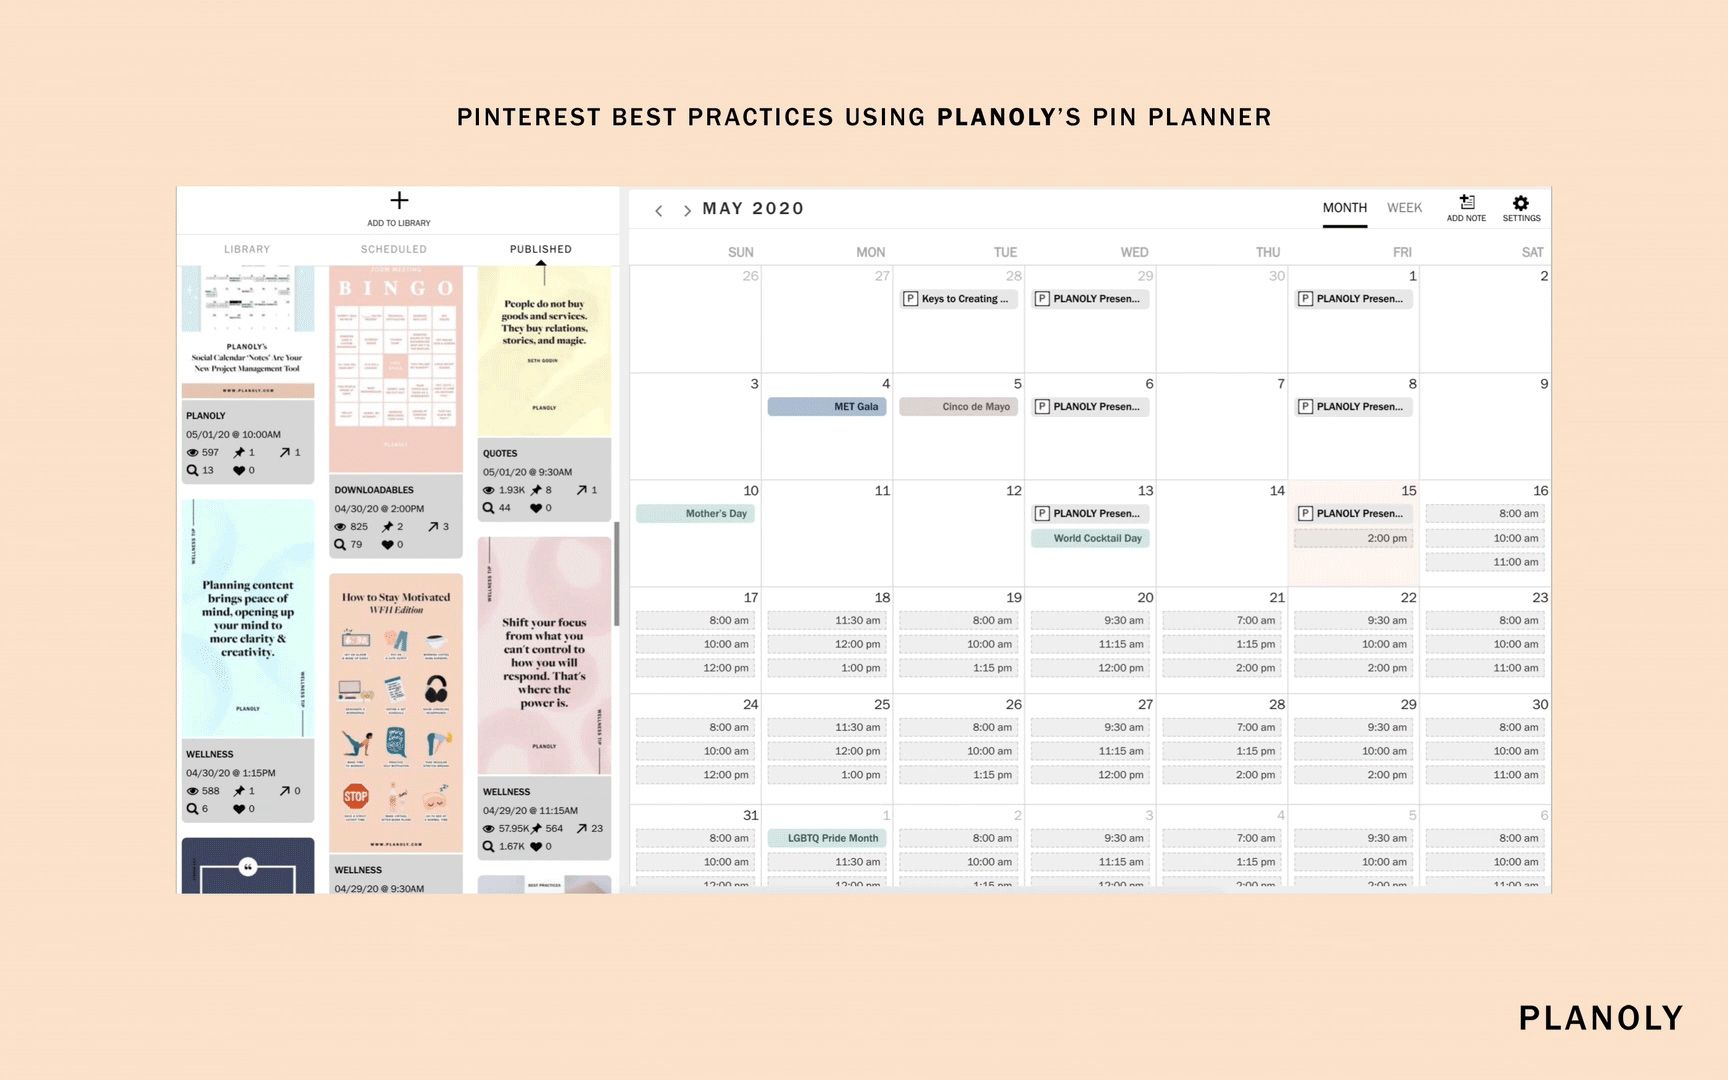 PLANOLY-Blog-Post-How-to-Use-Pinterest-Image-8